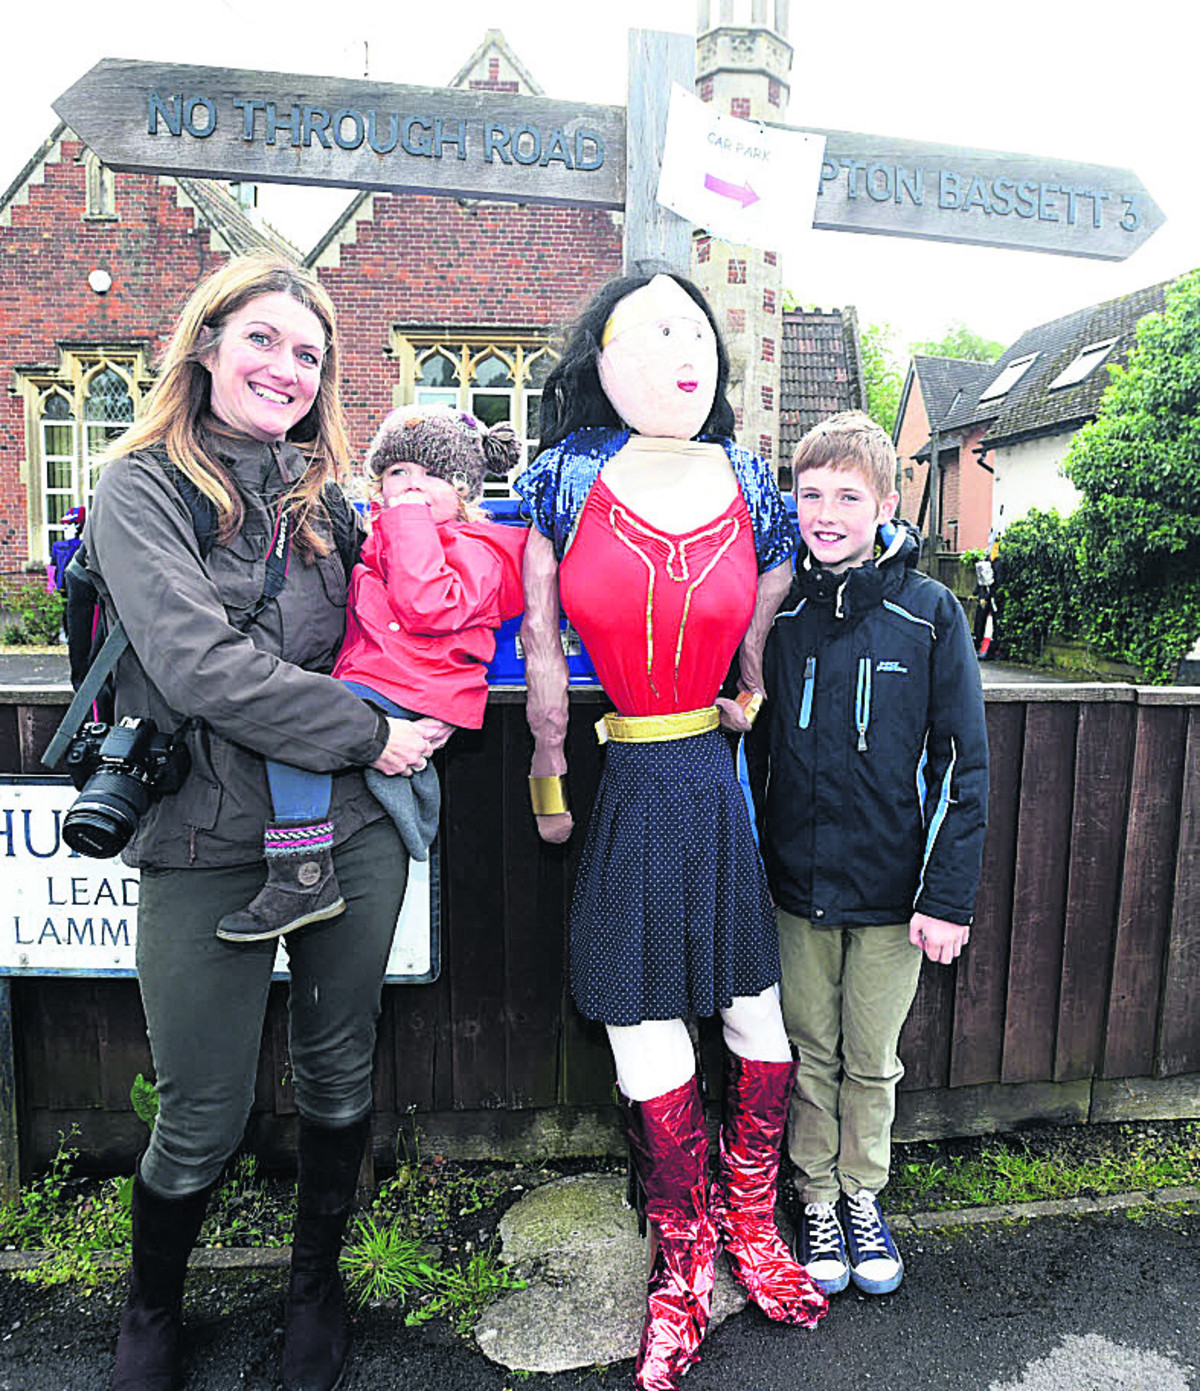 Edith, Errin and Alex Cameron, who arrived from Lower Compton, get to meet Wonder Woman at the signpost